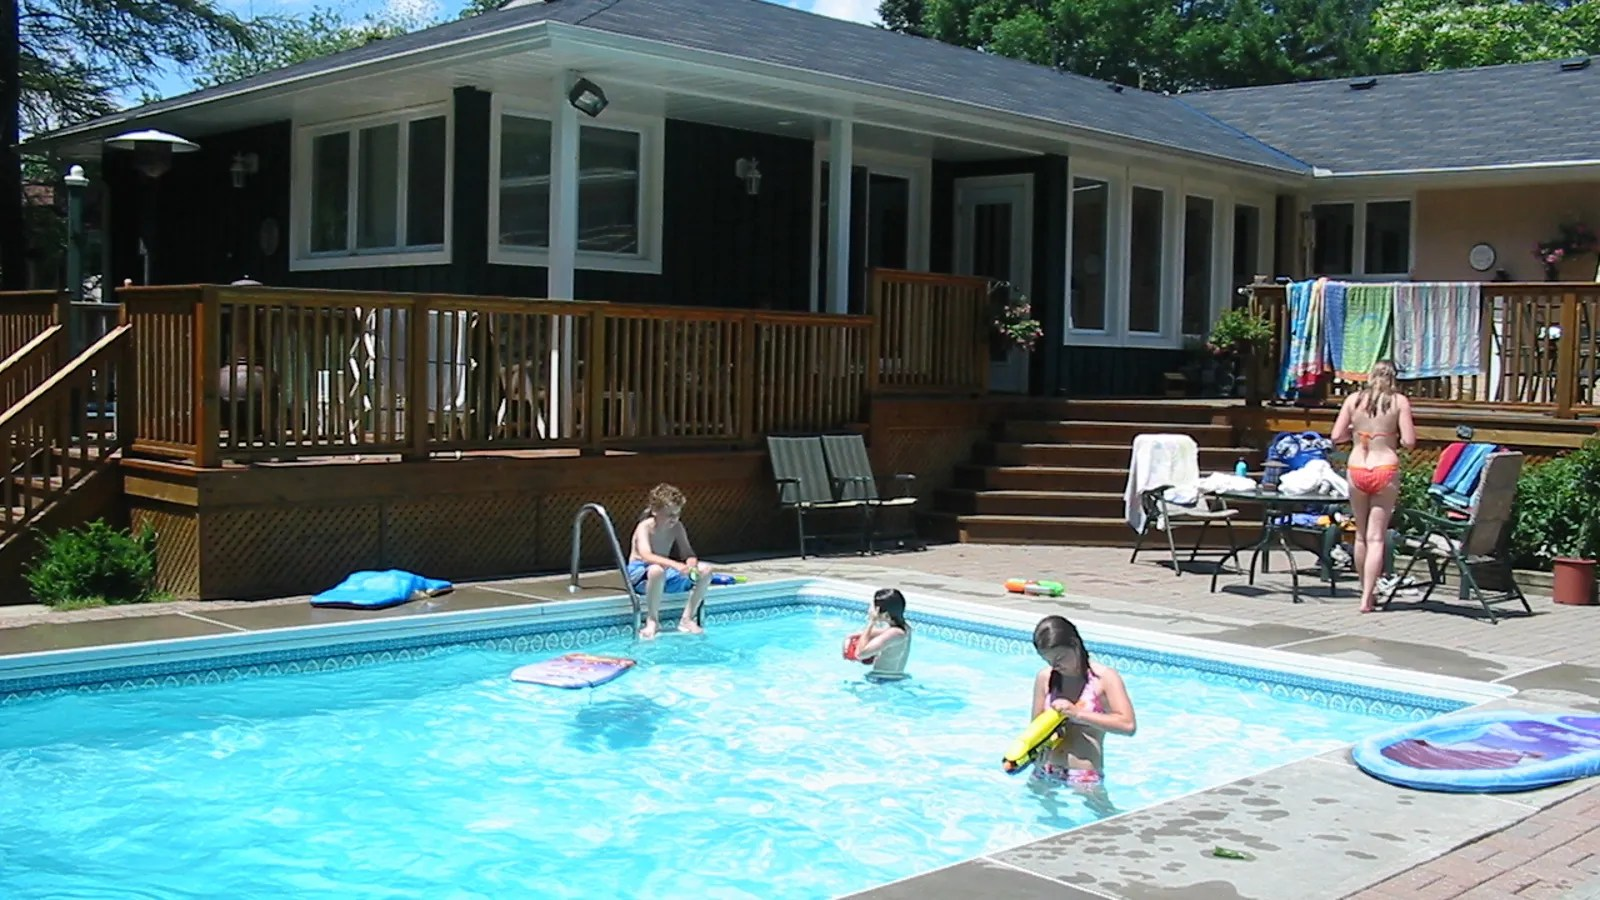 Pool Aus Container Why You Should Think Twice About Buying A Home With A Swimming Pool